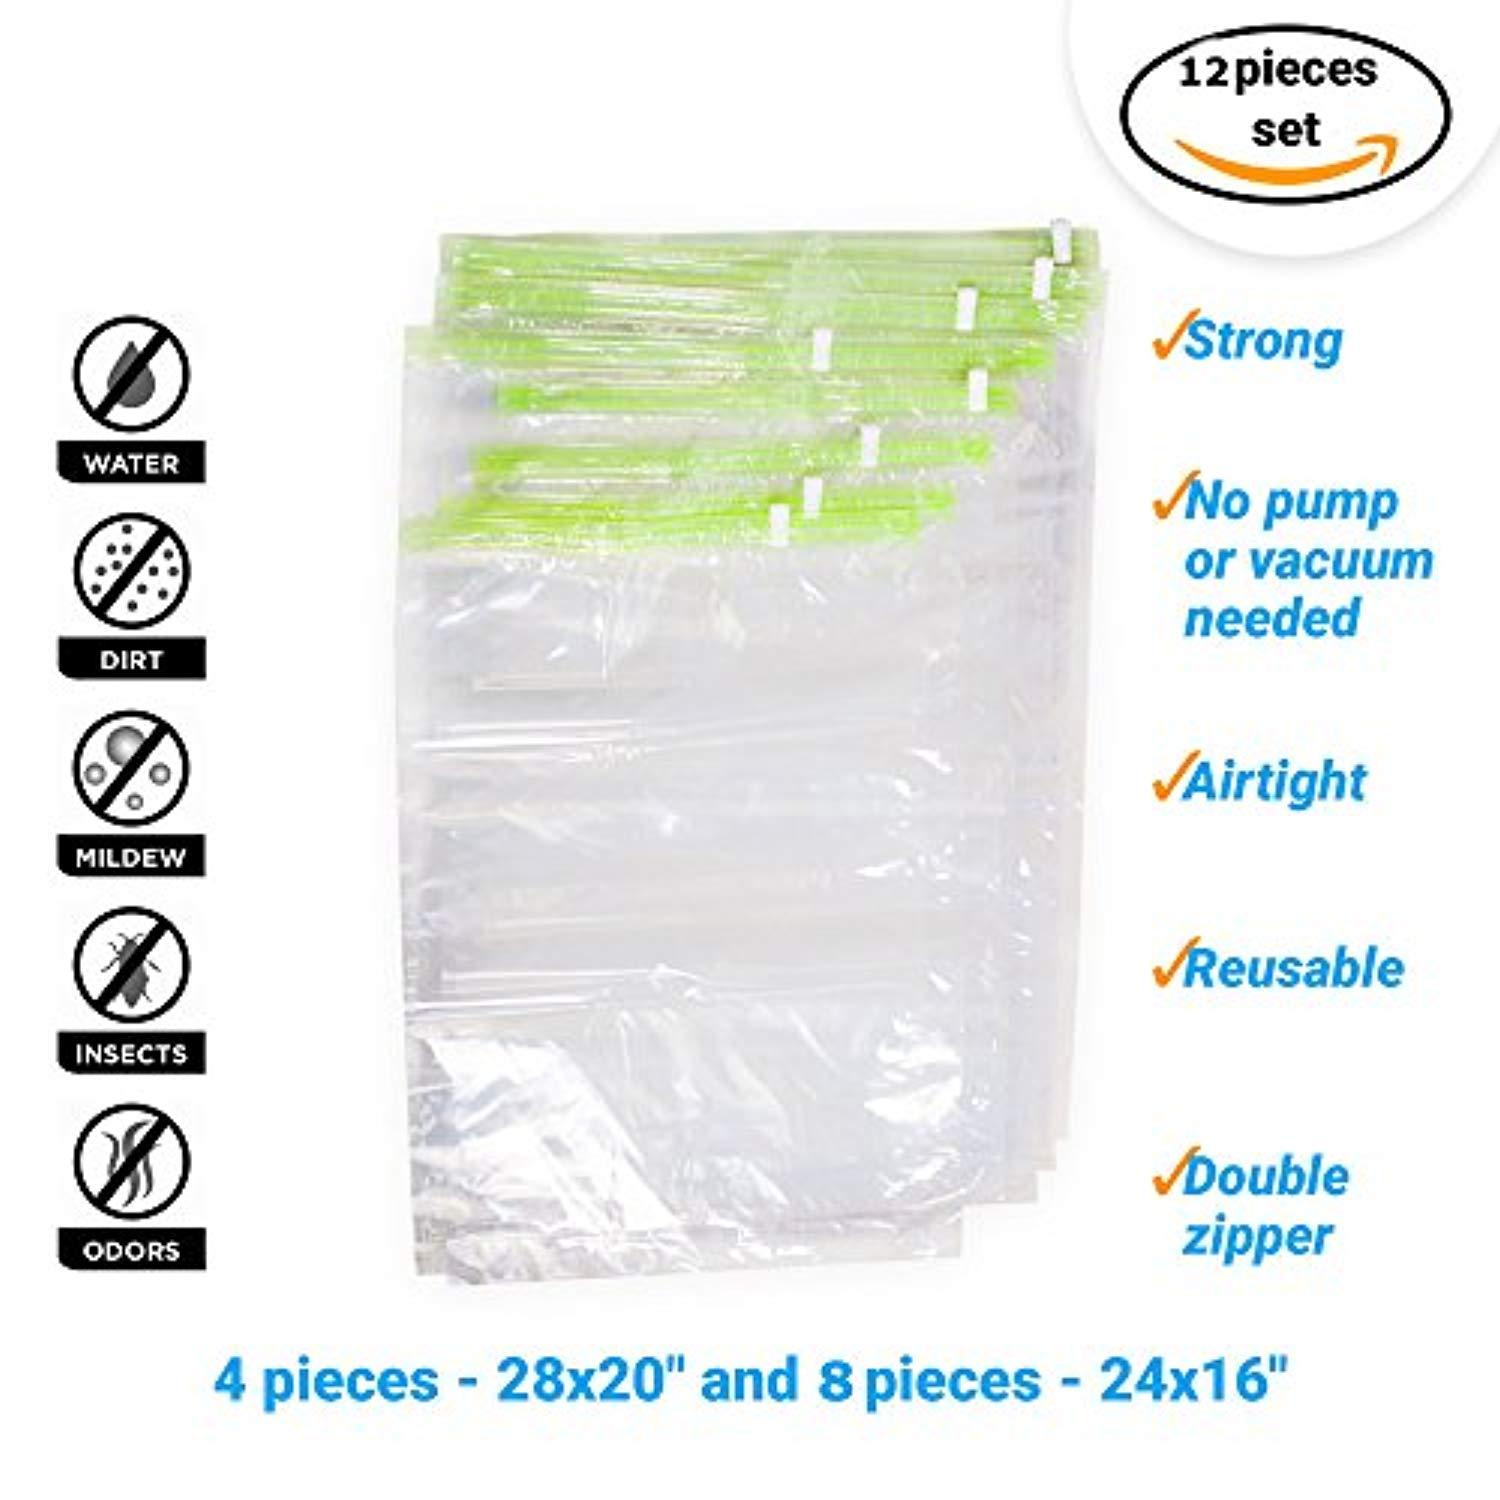 6pcs/set Vacuum Bag Saver Storage Bag Vacuum Sealed Compressed Organizer